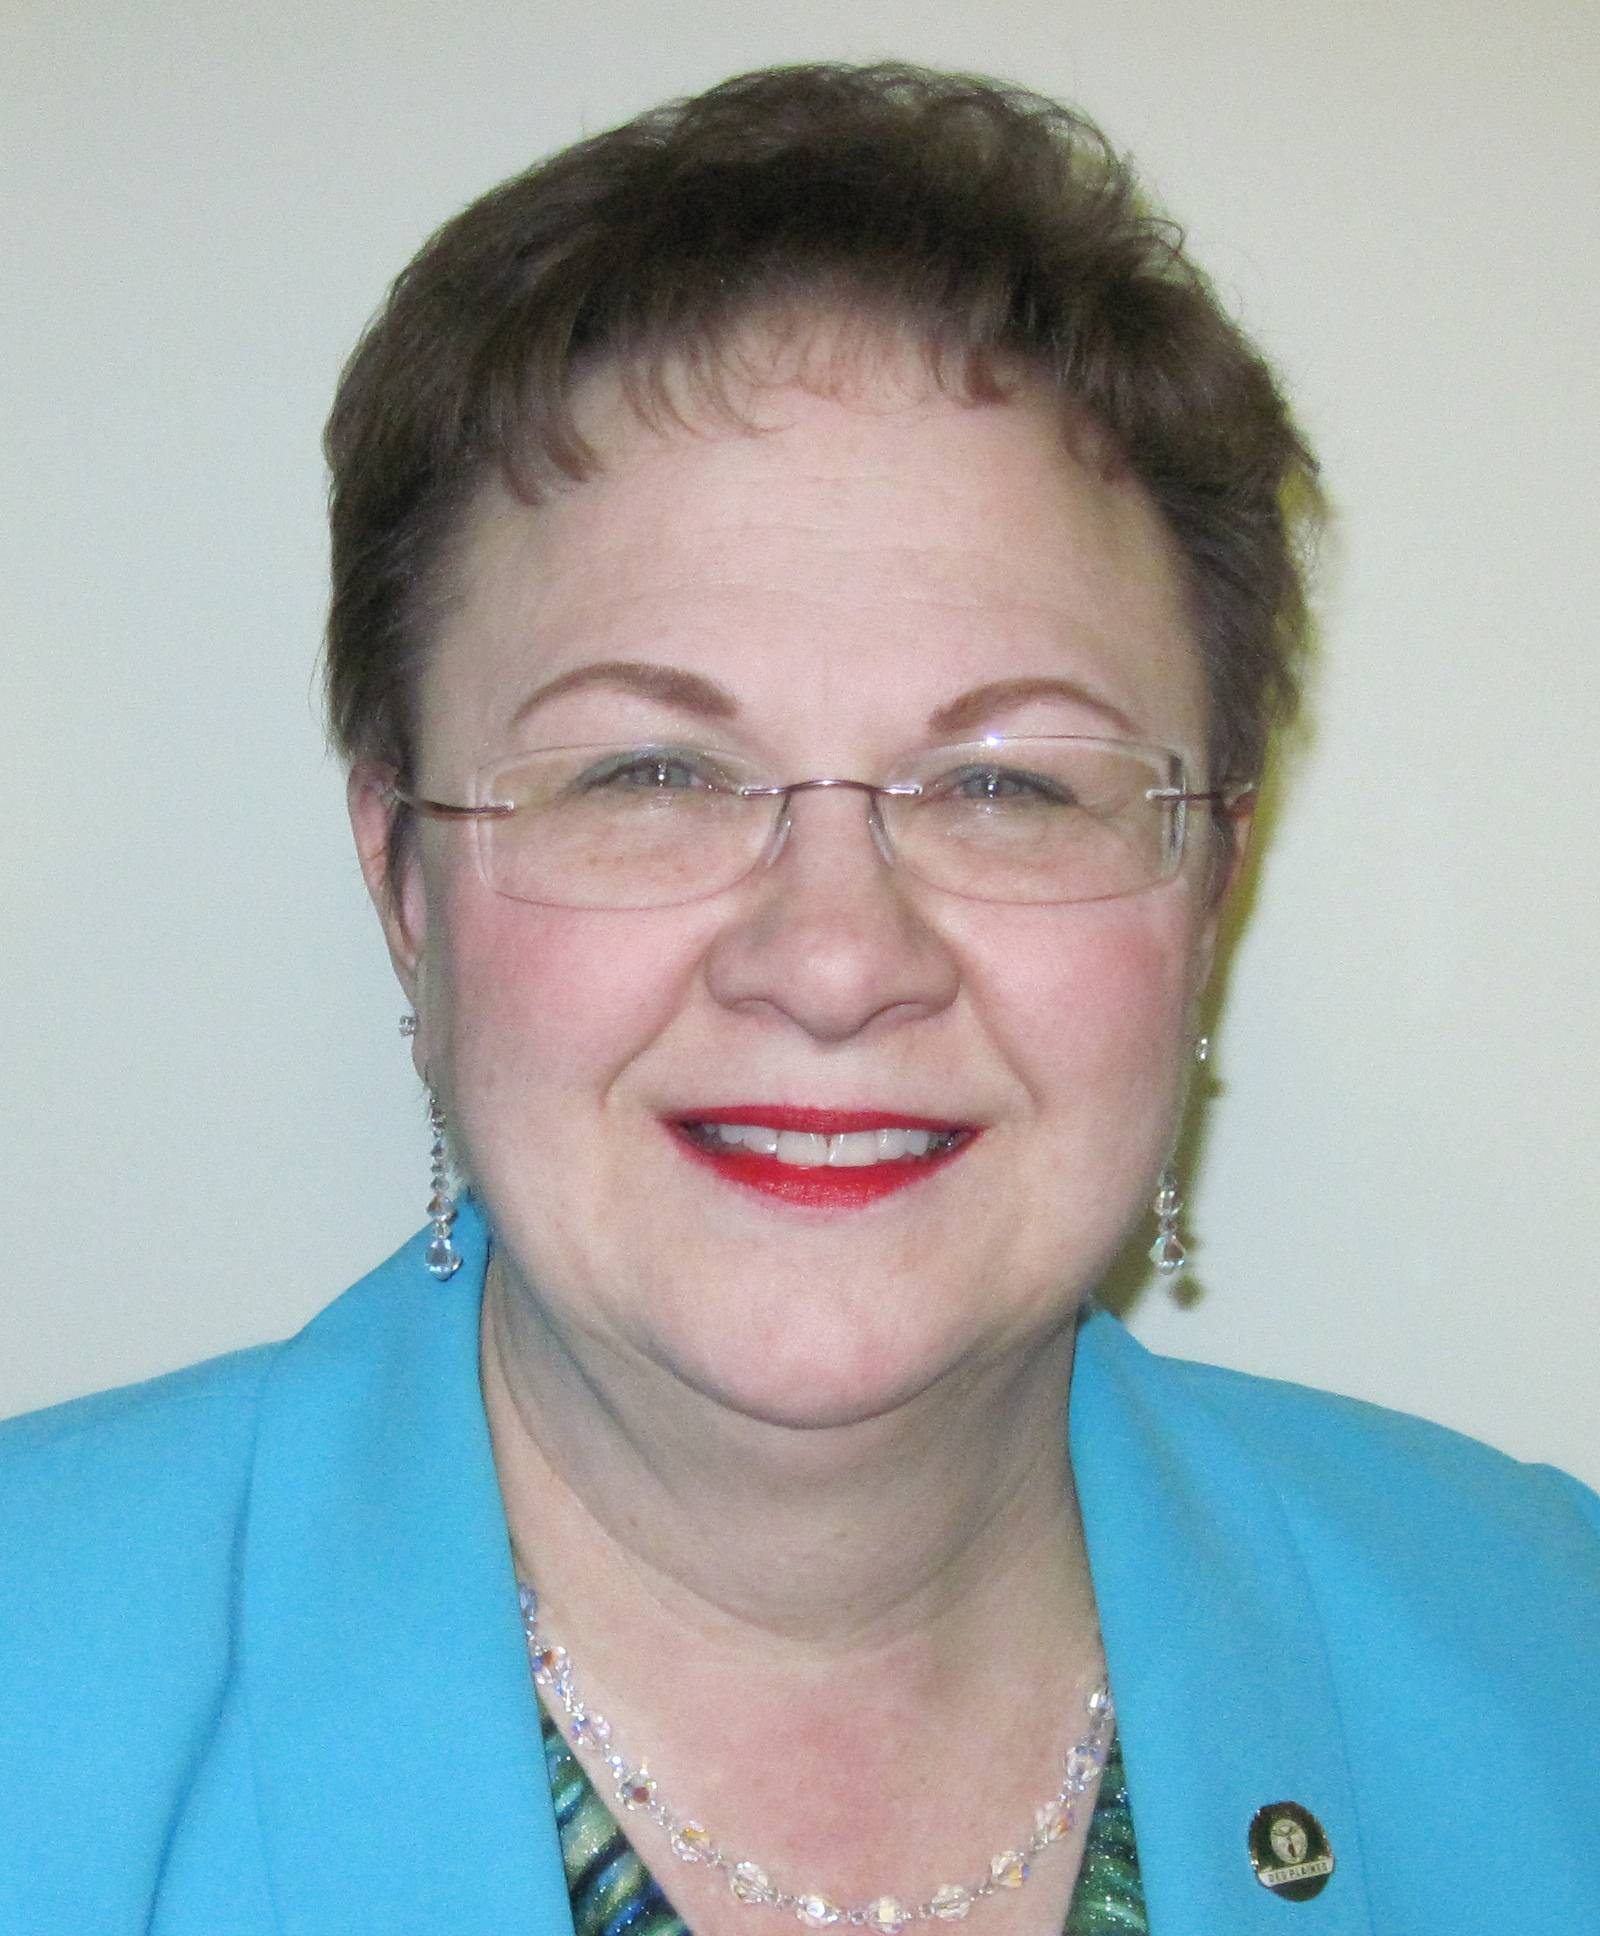 Gloria Ludwig, running for Des Plaines Clerk (4-year Term)